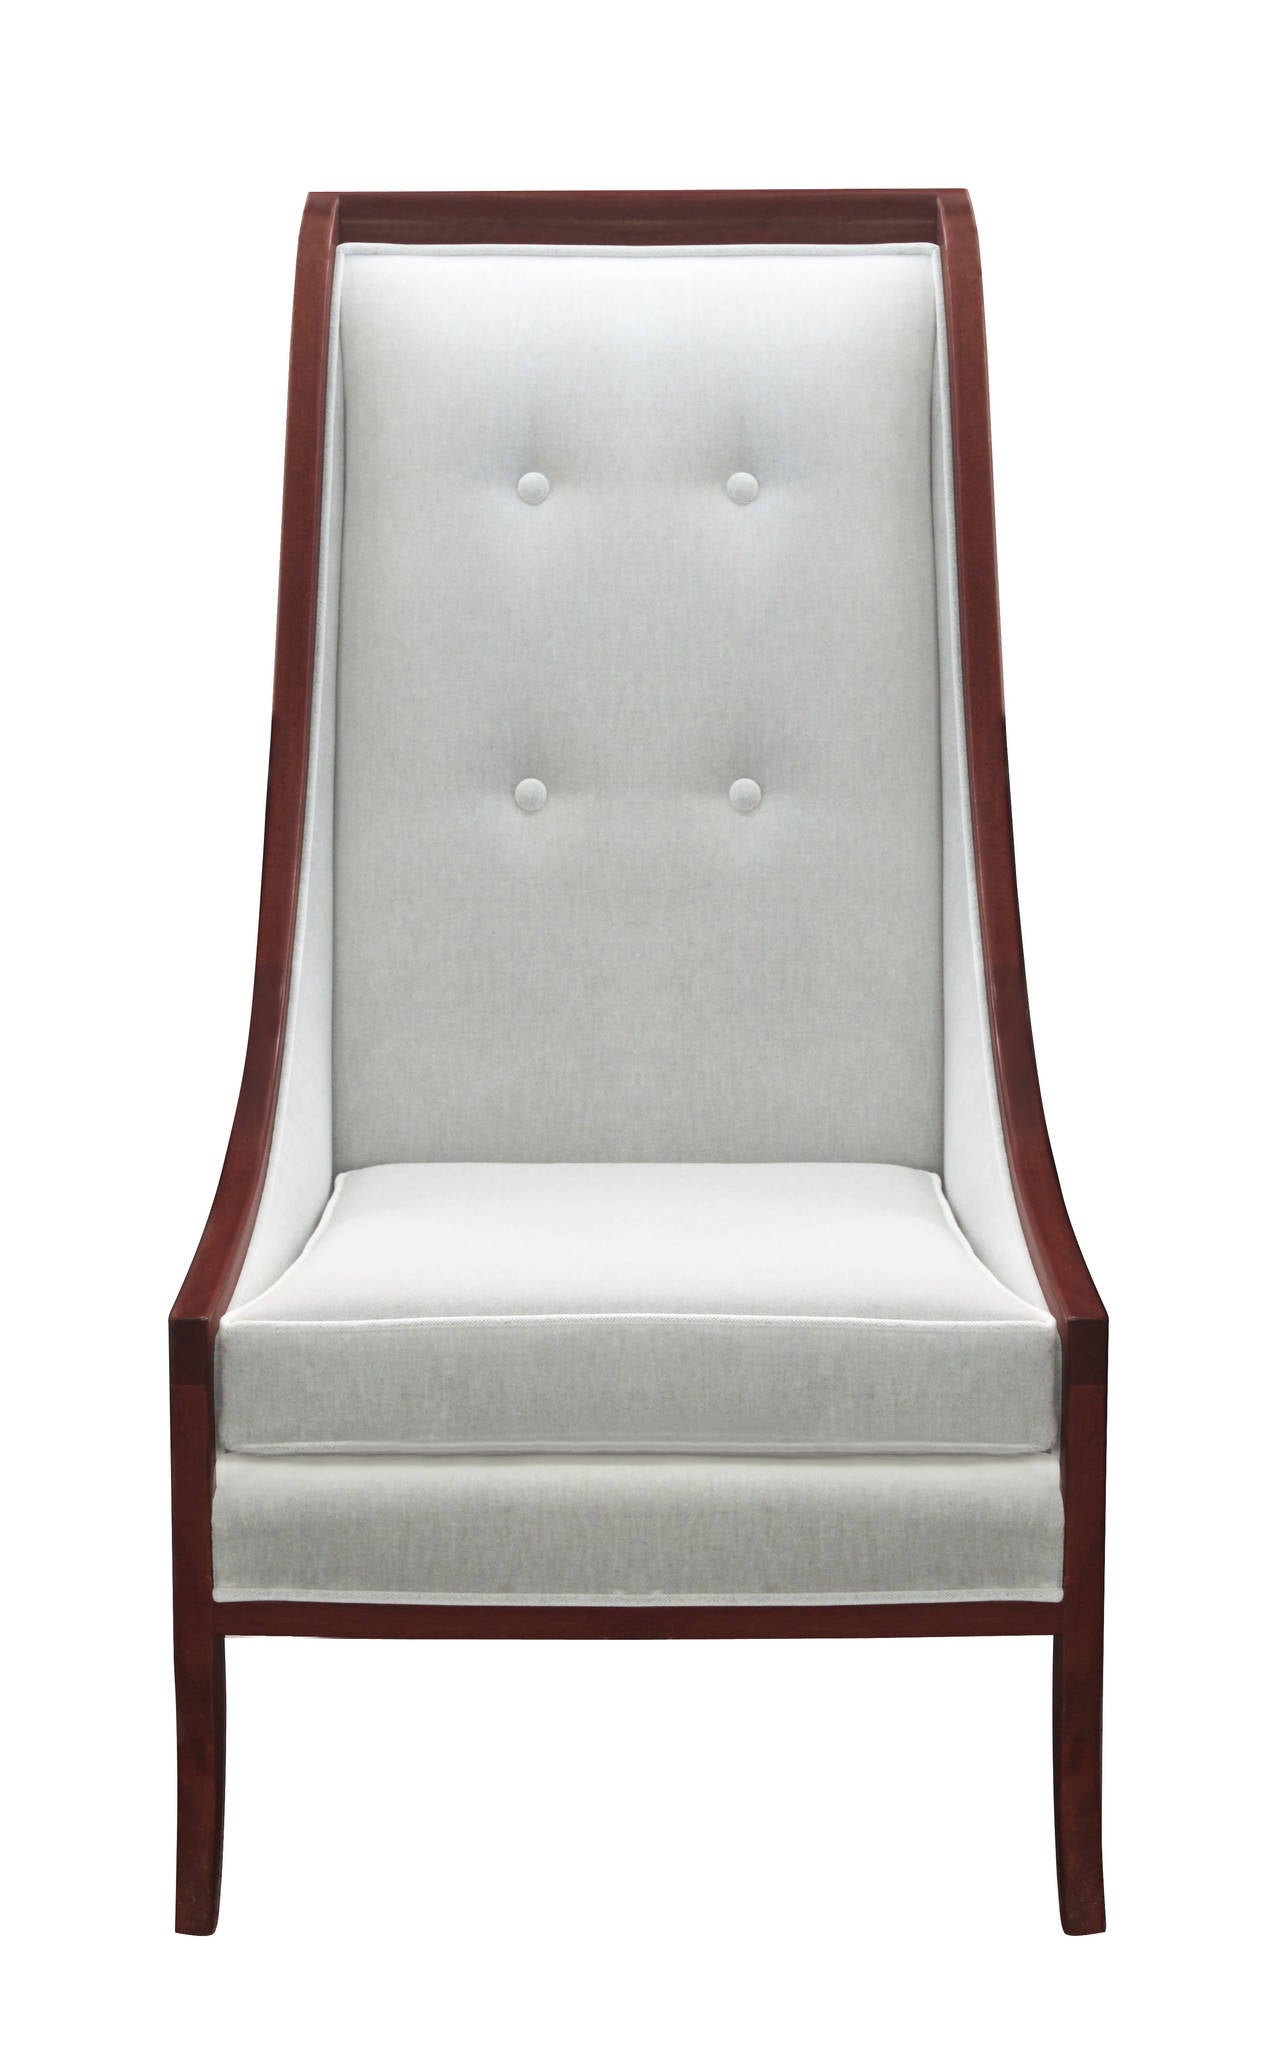 High back lounge chairs - Pair Of High Back Lounge Chairs Framed In Mahogany By John Widdicomb 2